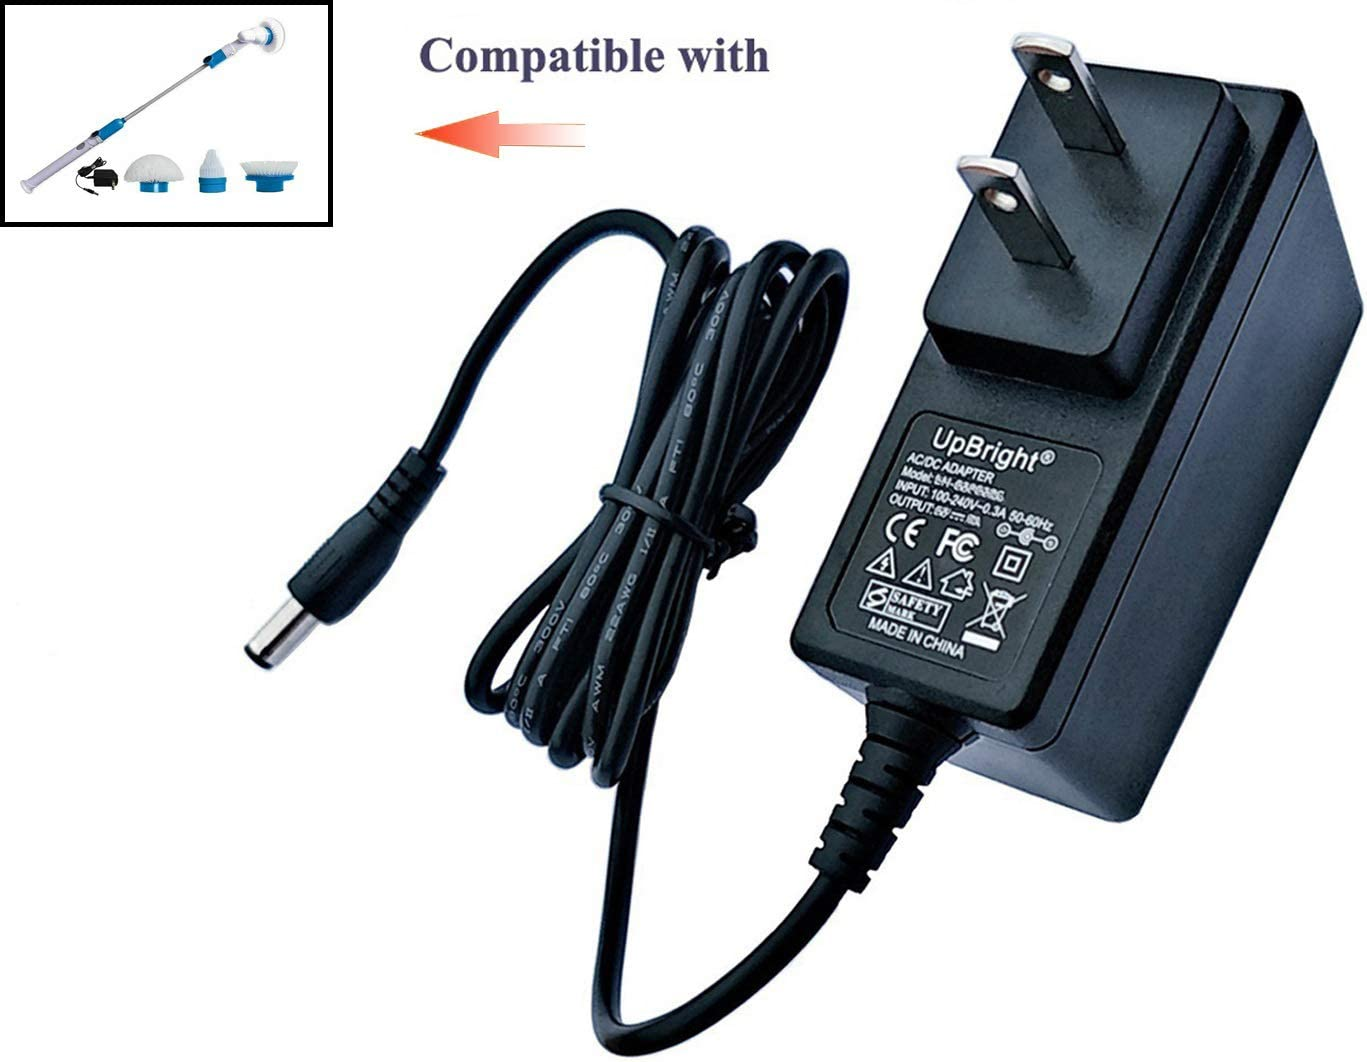 UpBright 8.5V AC/DC Adapter Compatible with Hurricane Spin Scrubber Brush Rechargeable Turbo Scrubber TeleBrands Corp Hurricane SpinScrubber Brush HSS1 HSSI JF-DY085030 8.5VDC 300mA Battery Charger